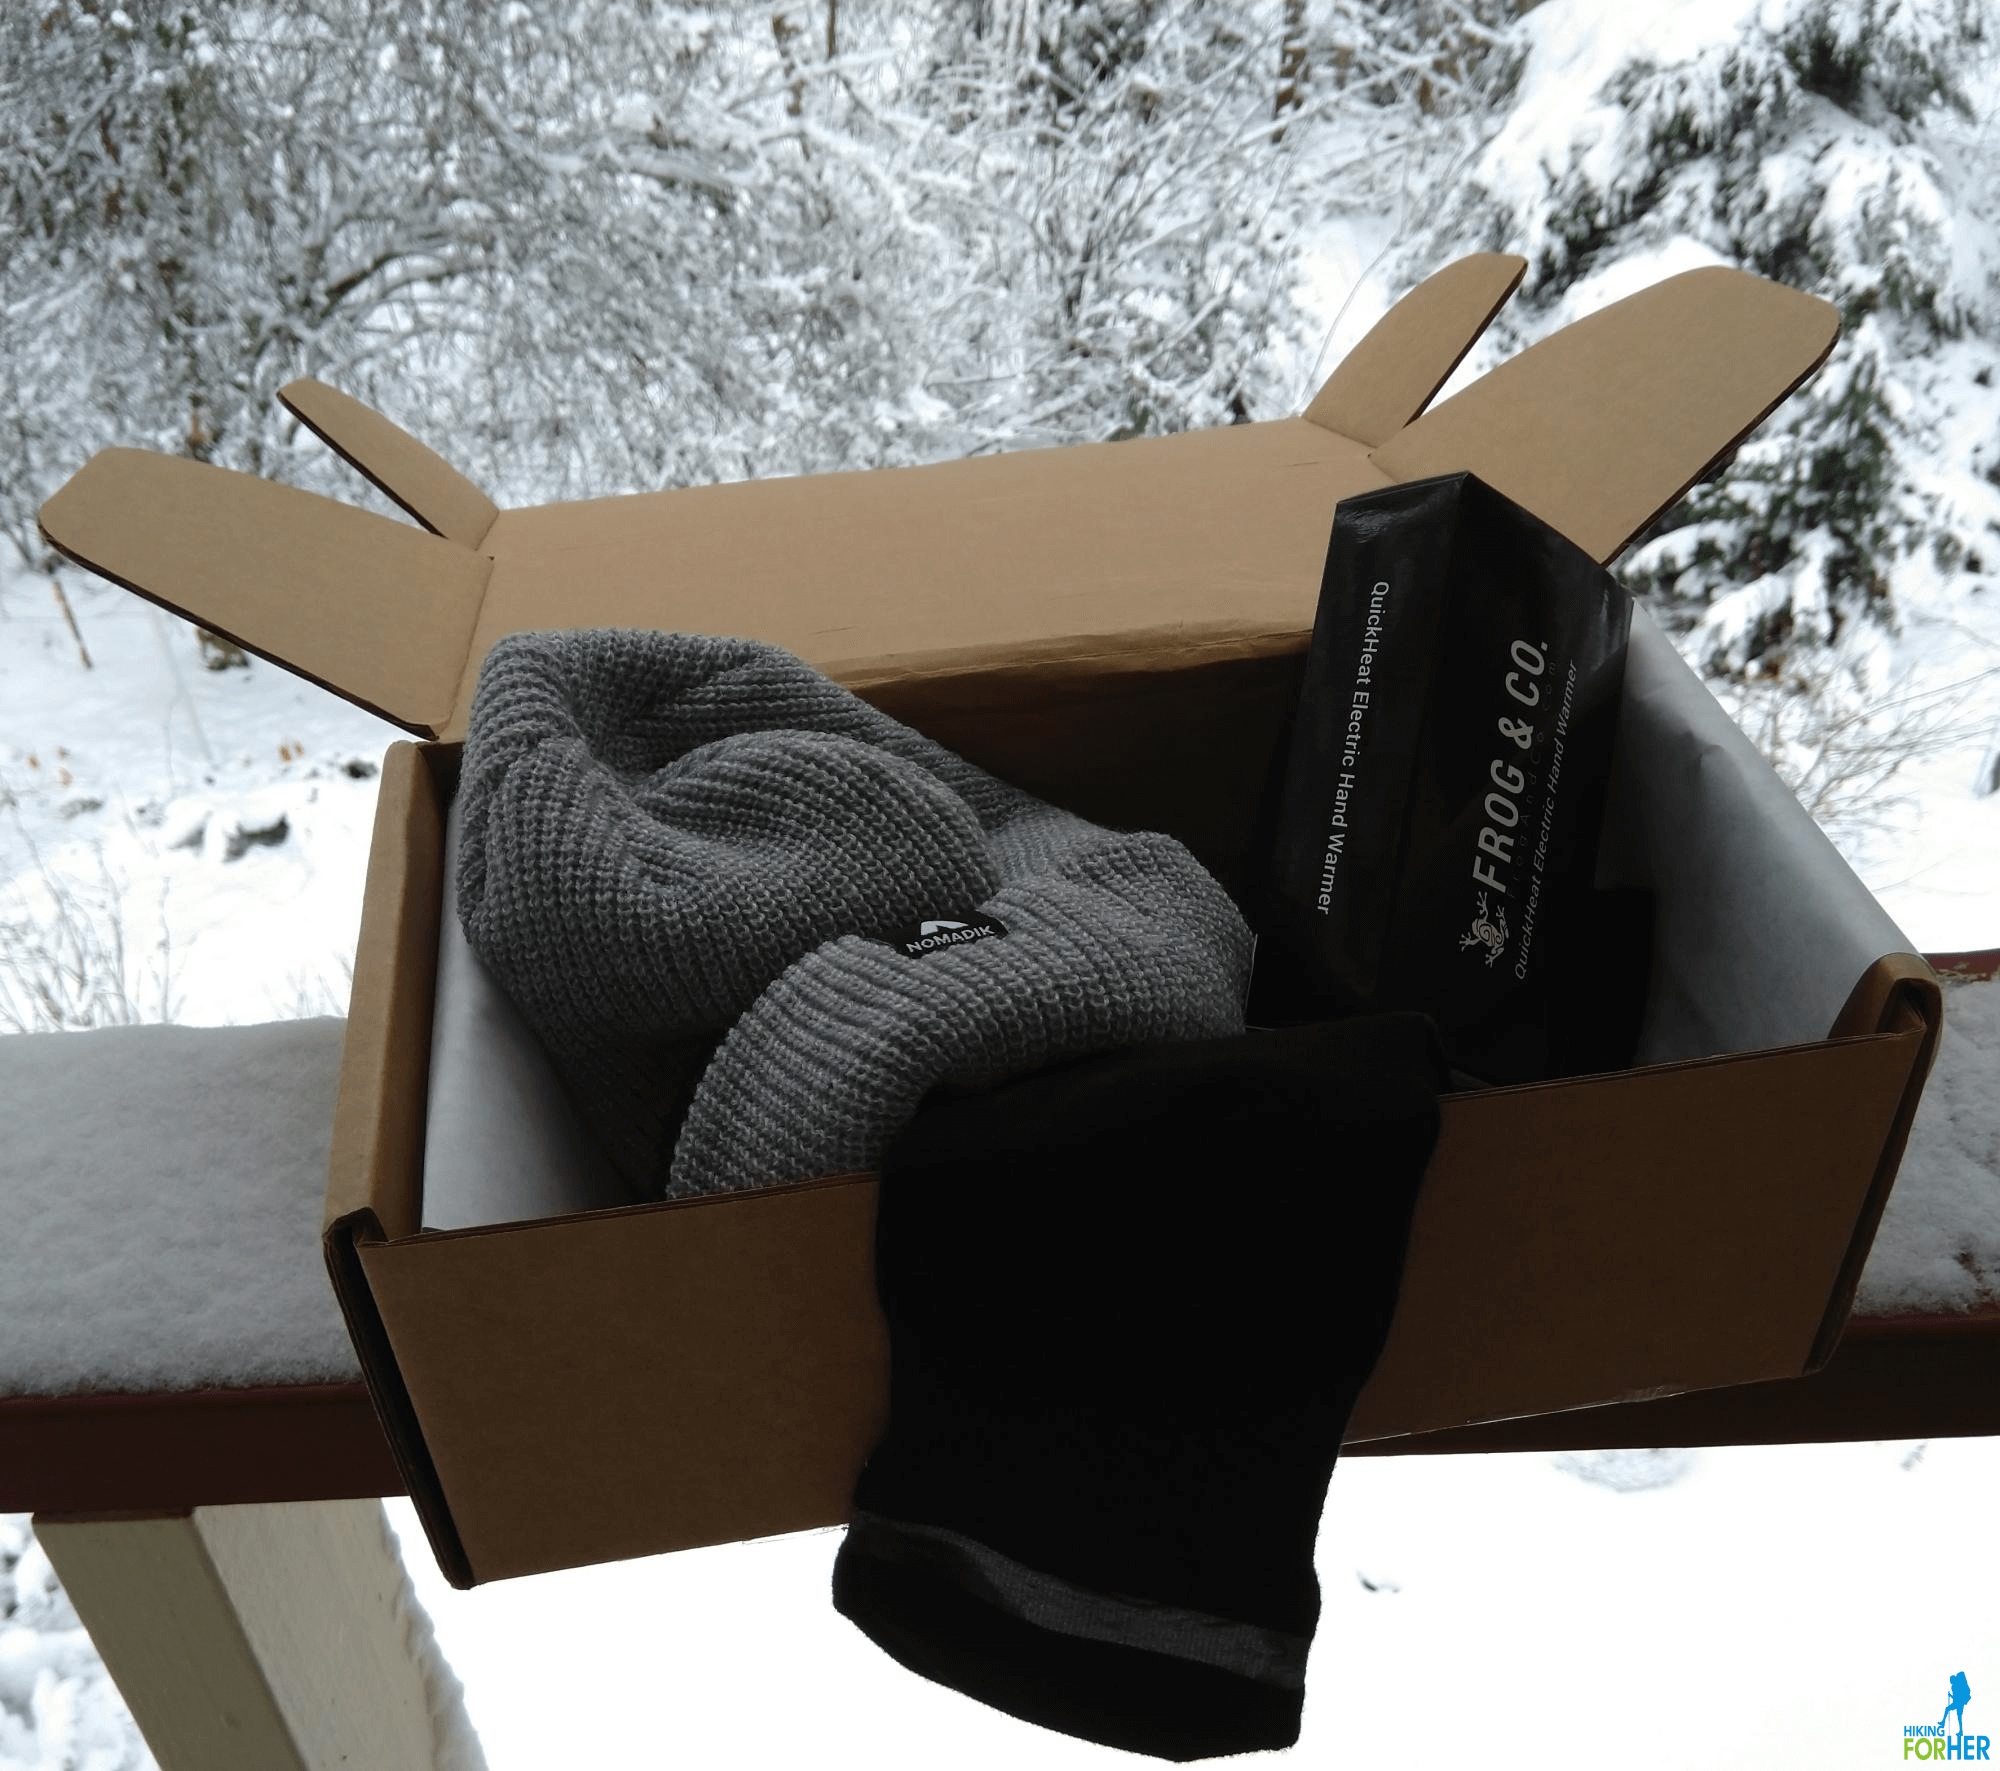 A gray hat, black socks and a small black box inside a brown cardboard box with a snowy background